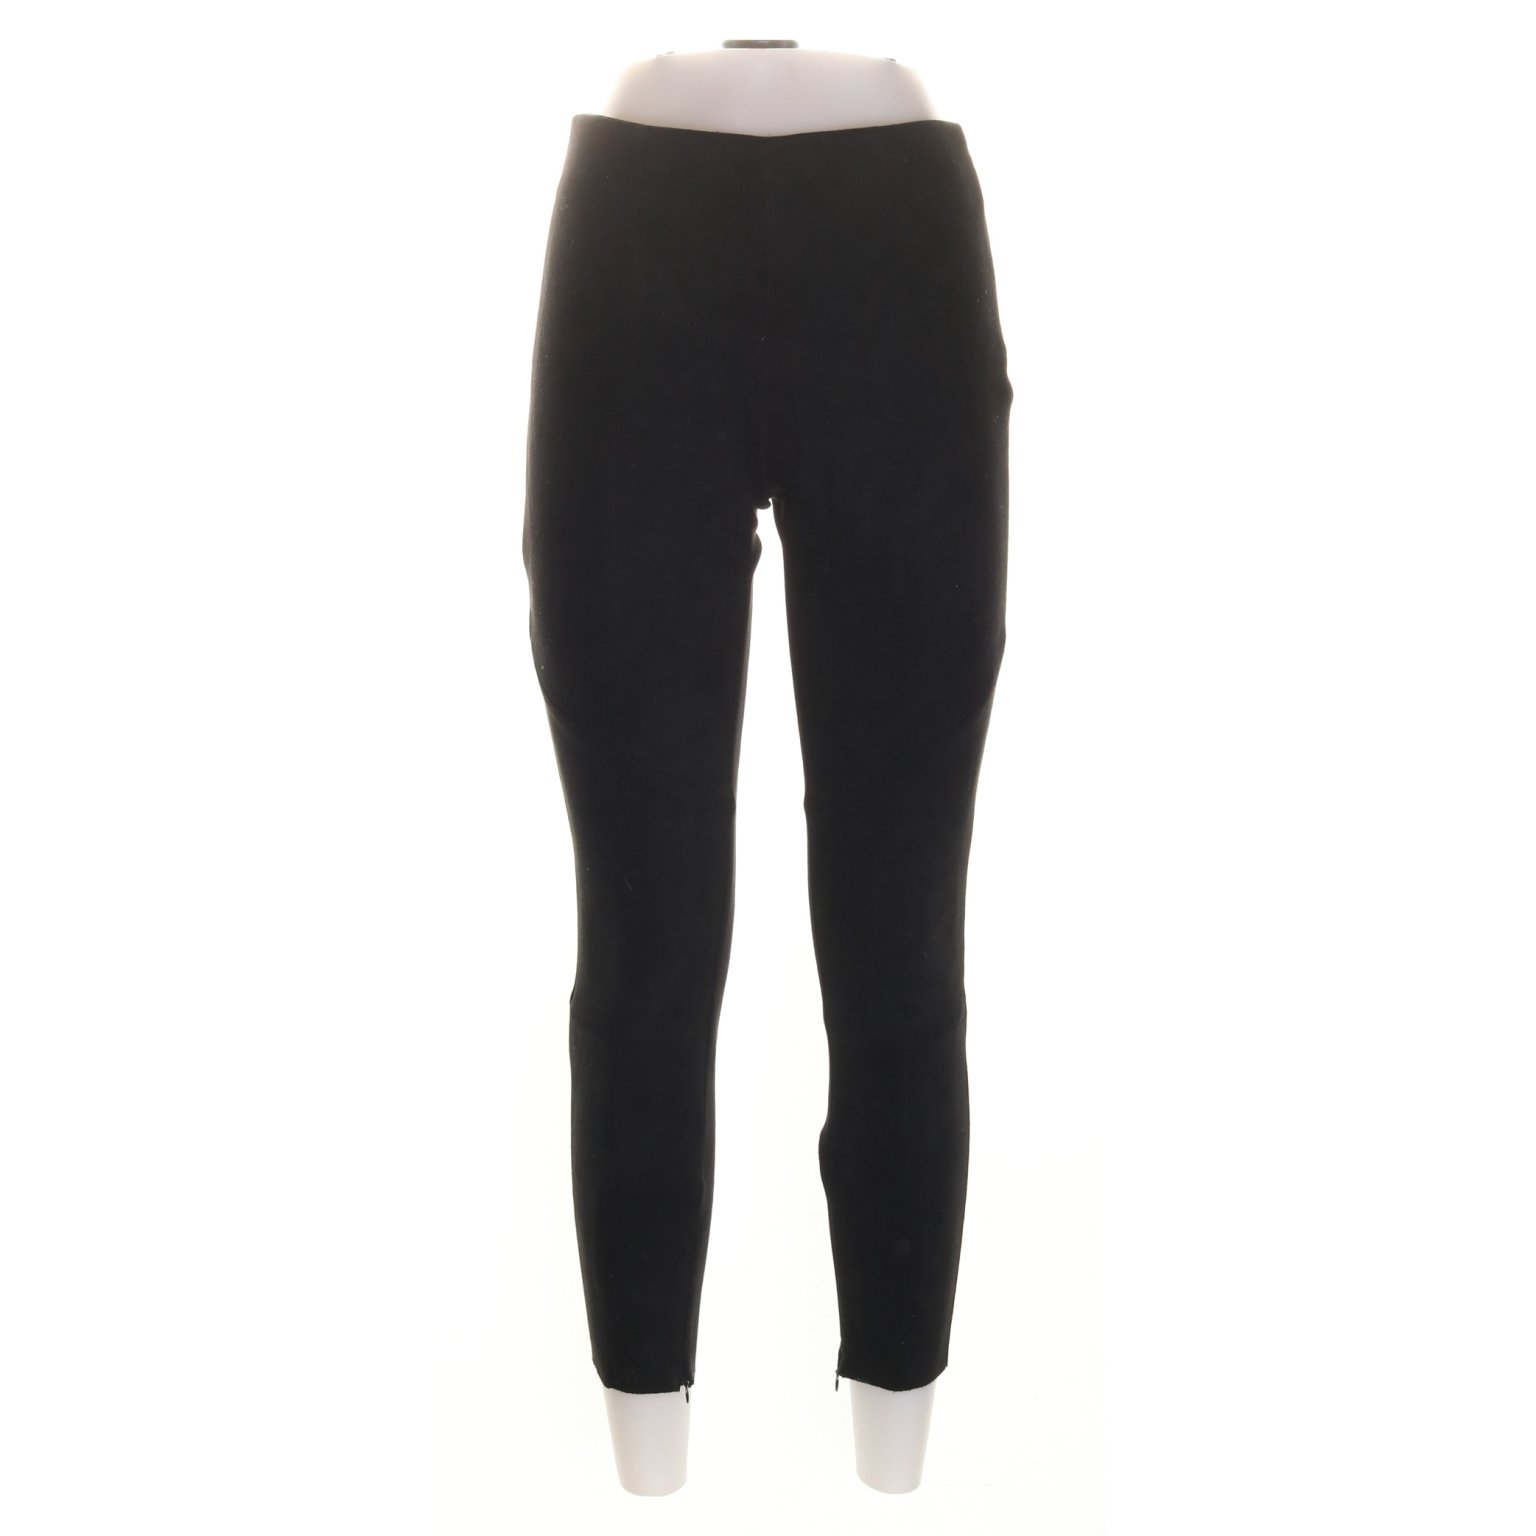 Zara Basic, Treggings, Strl: S, Svart, Mockaimitation